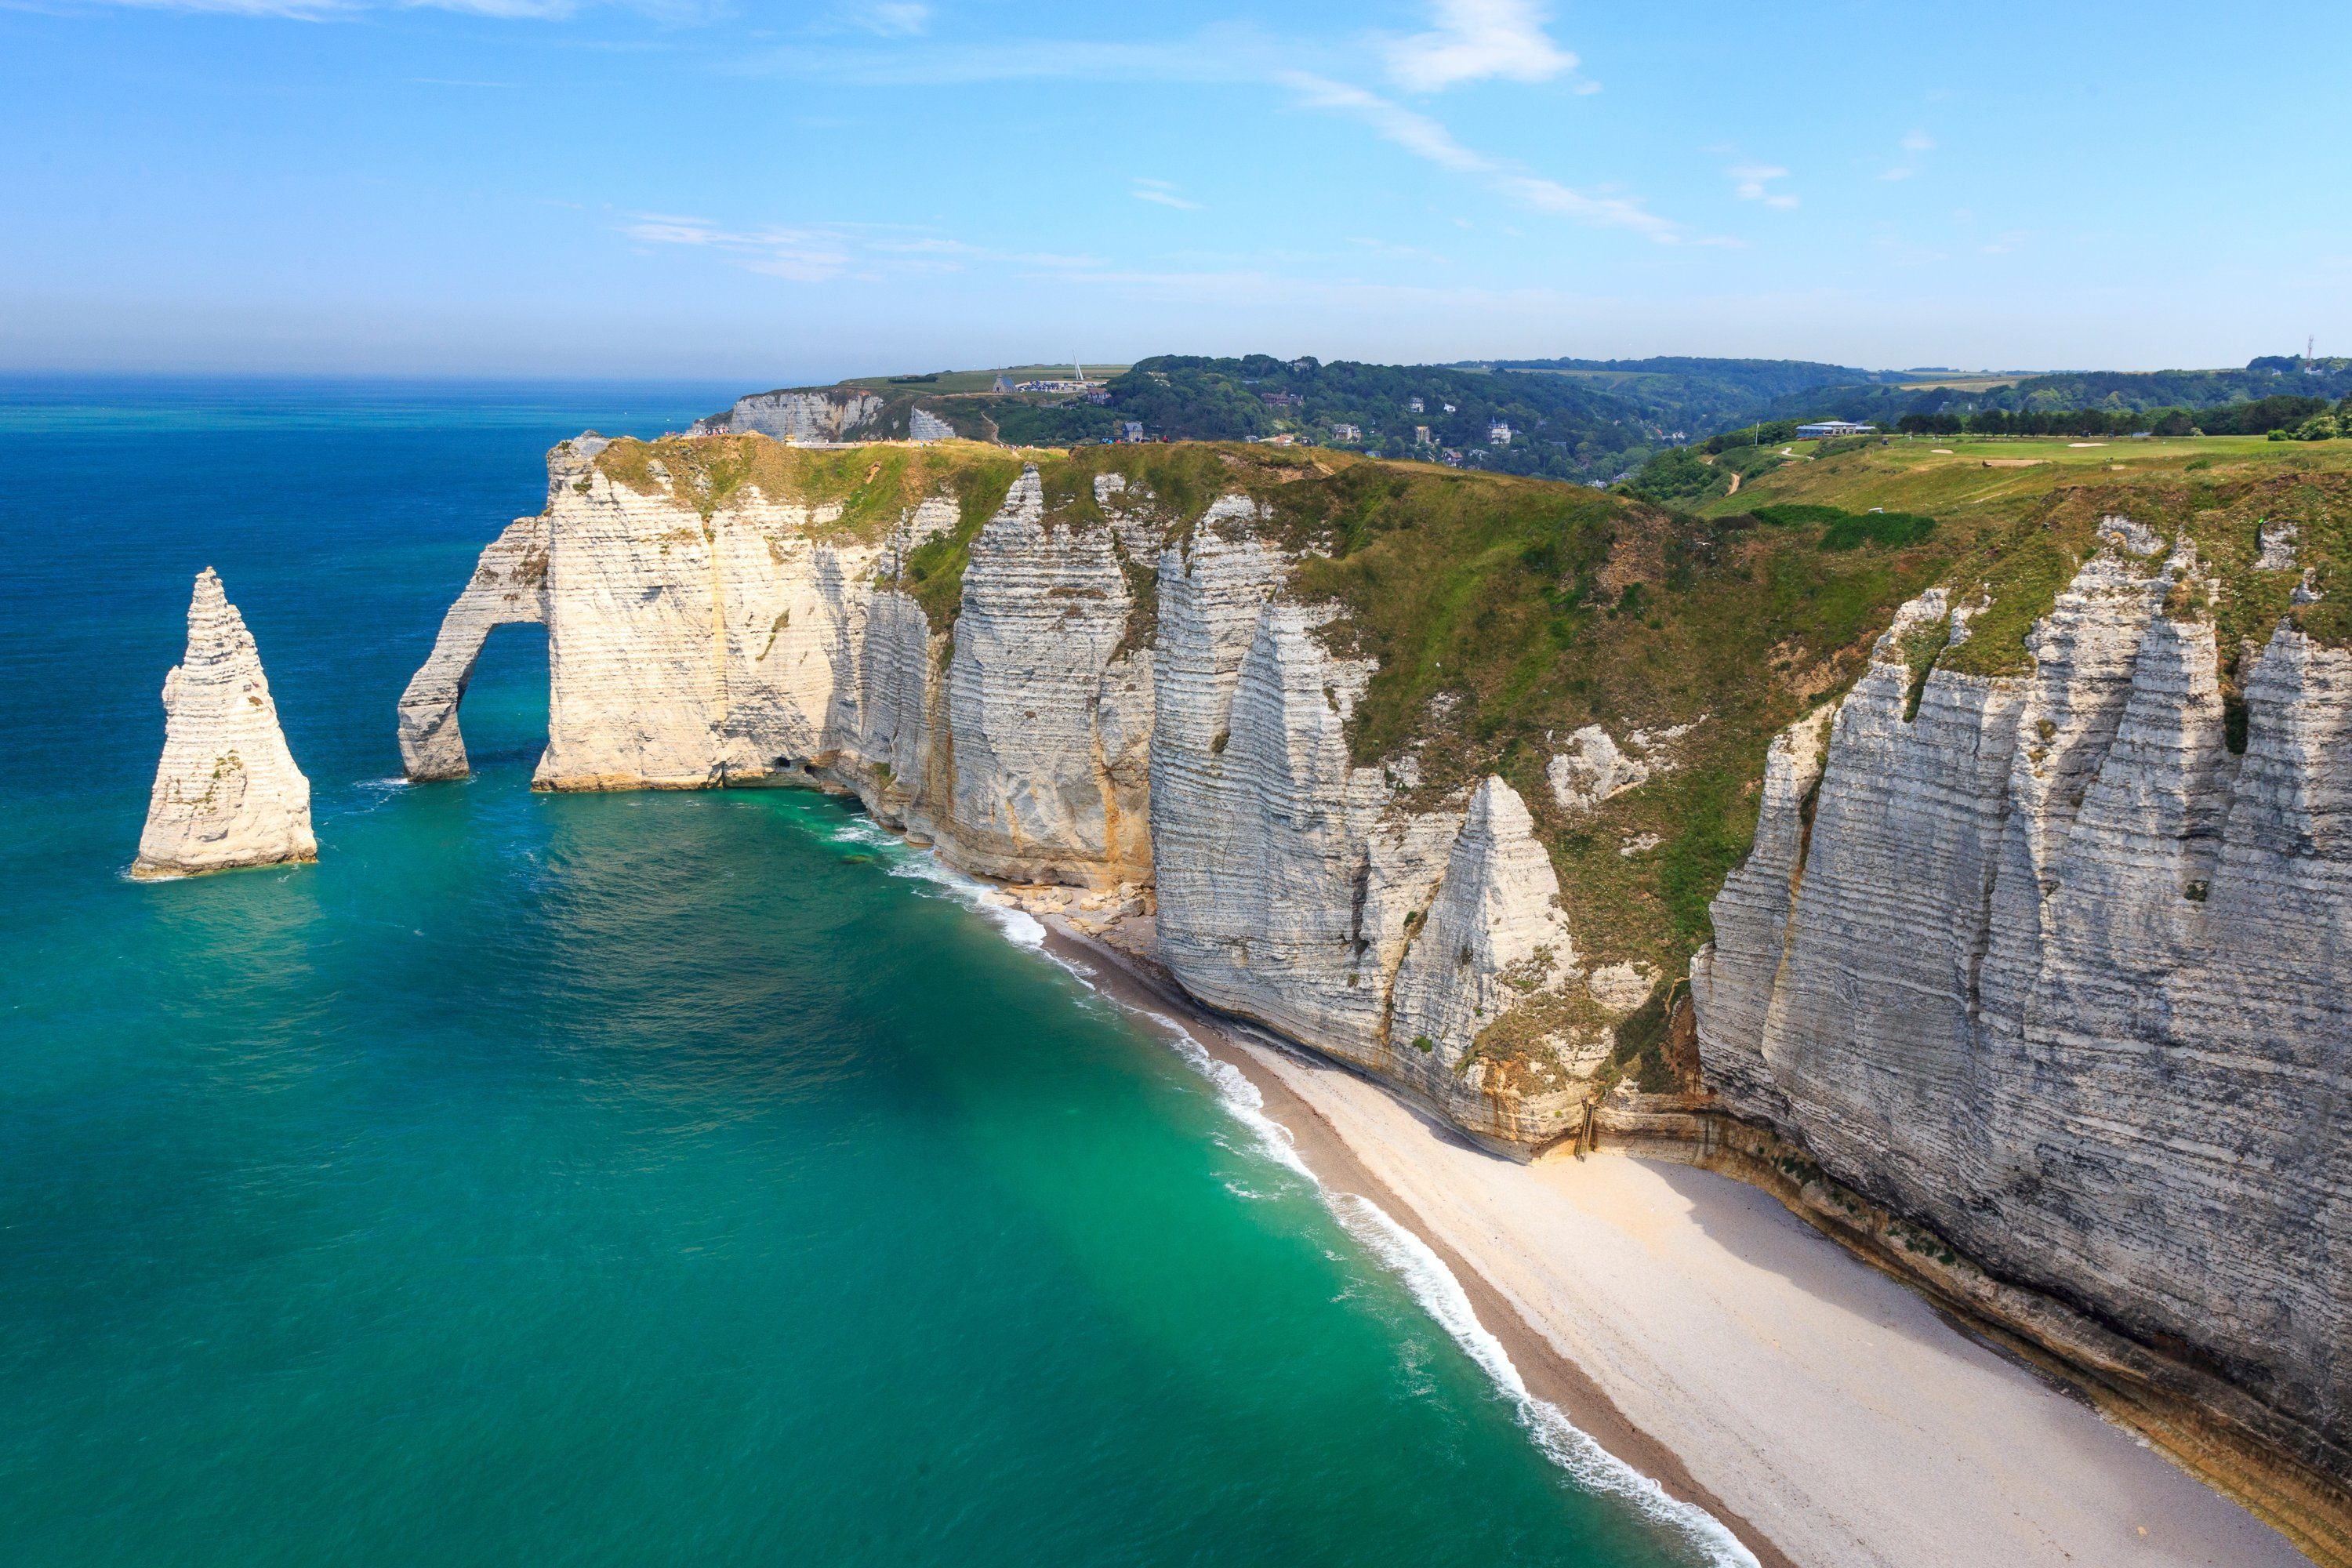 Etretat is a town on the north coast of France, known for the striking rock formations carved out of its white cliffs. (Shutterstock Photo)